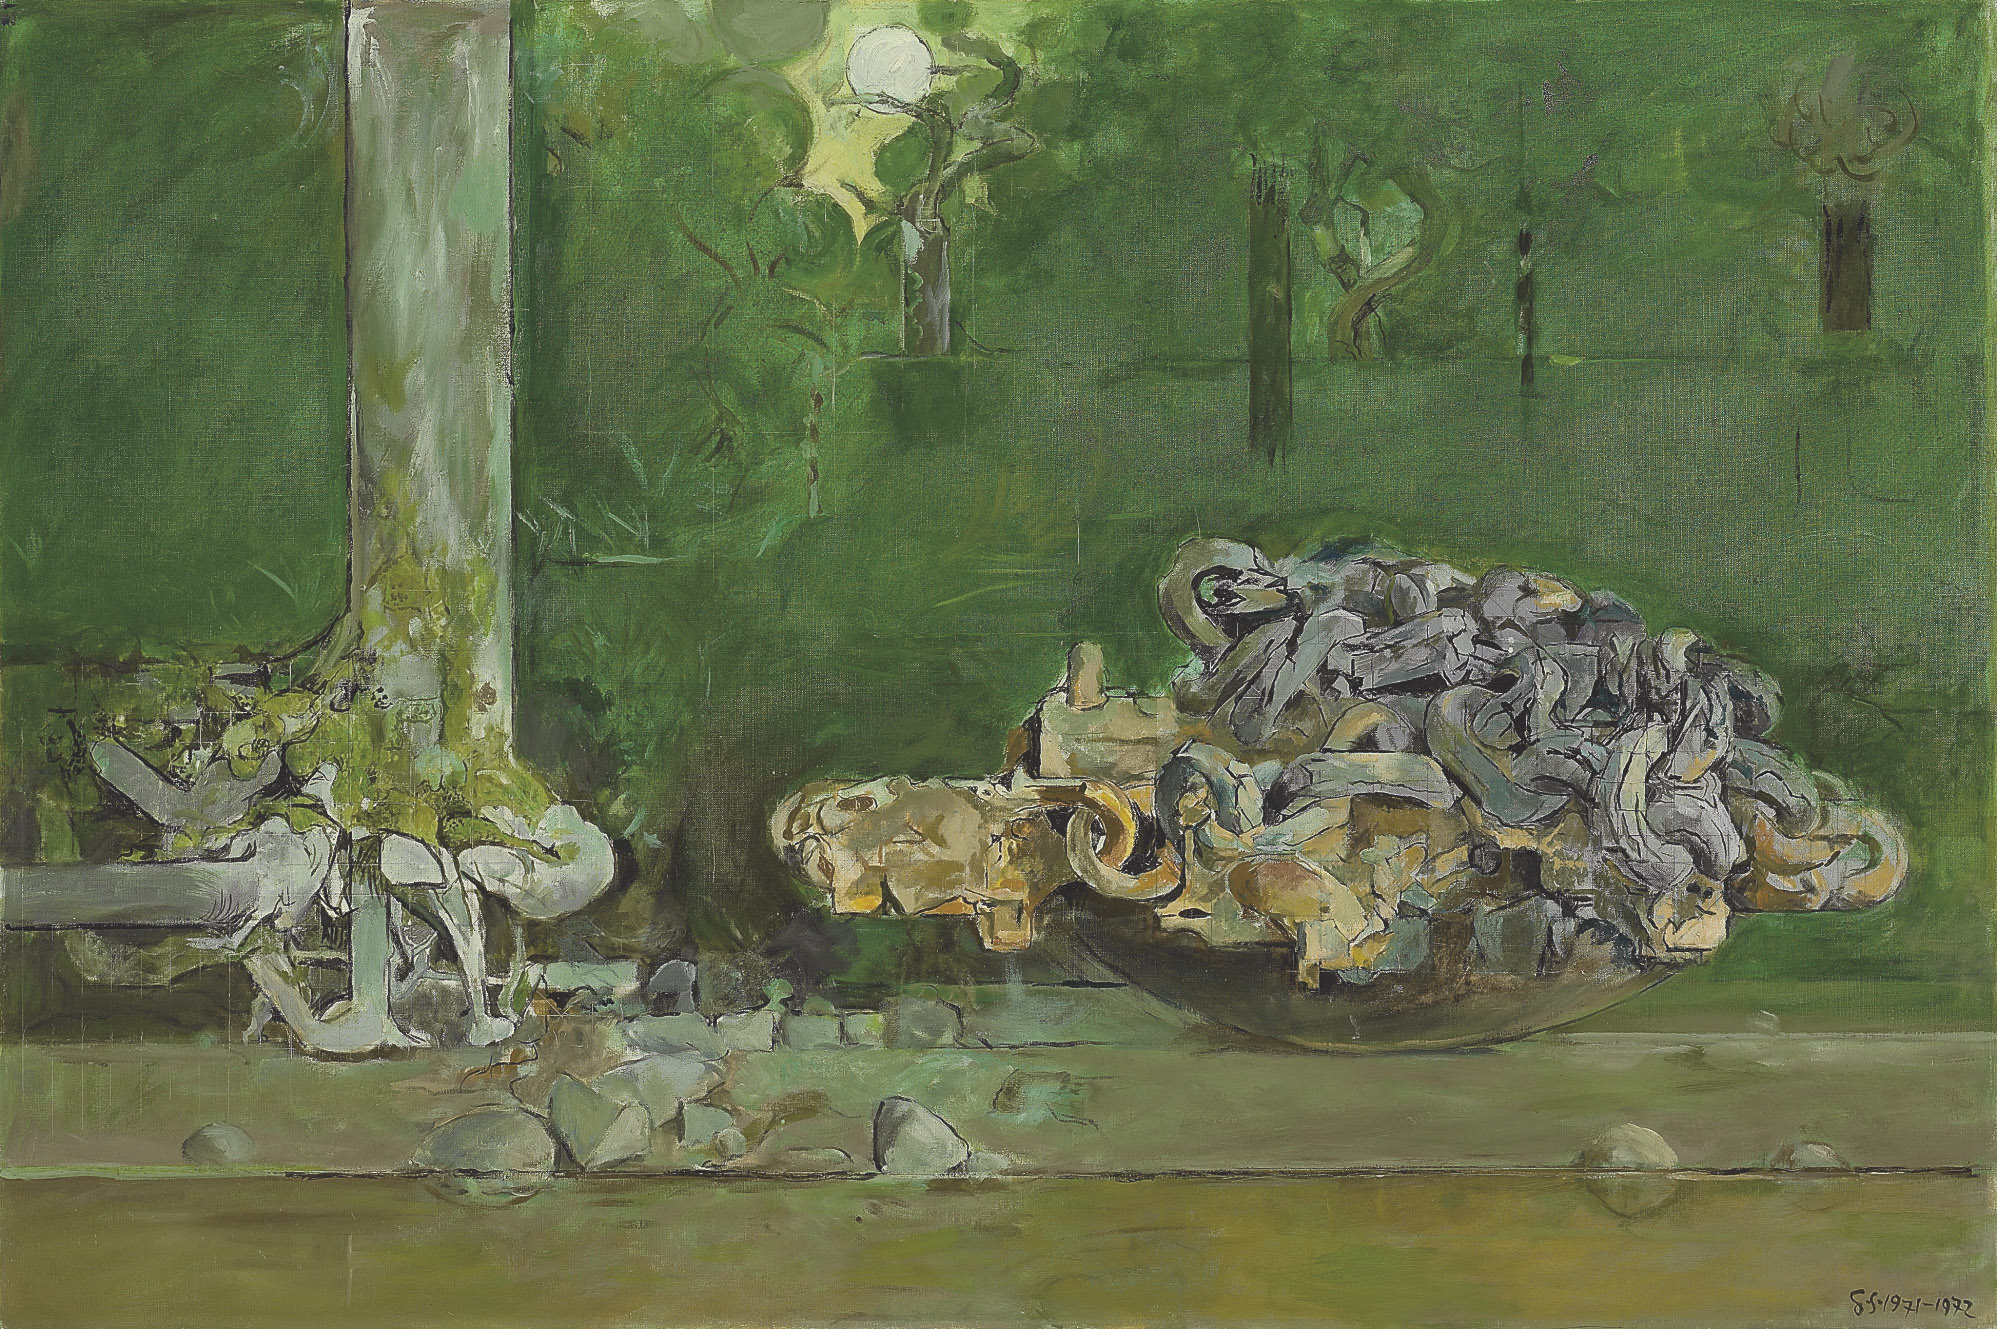 Forest with Chains